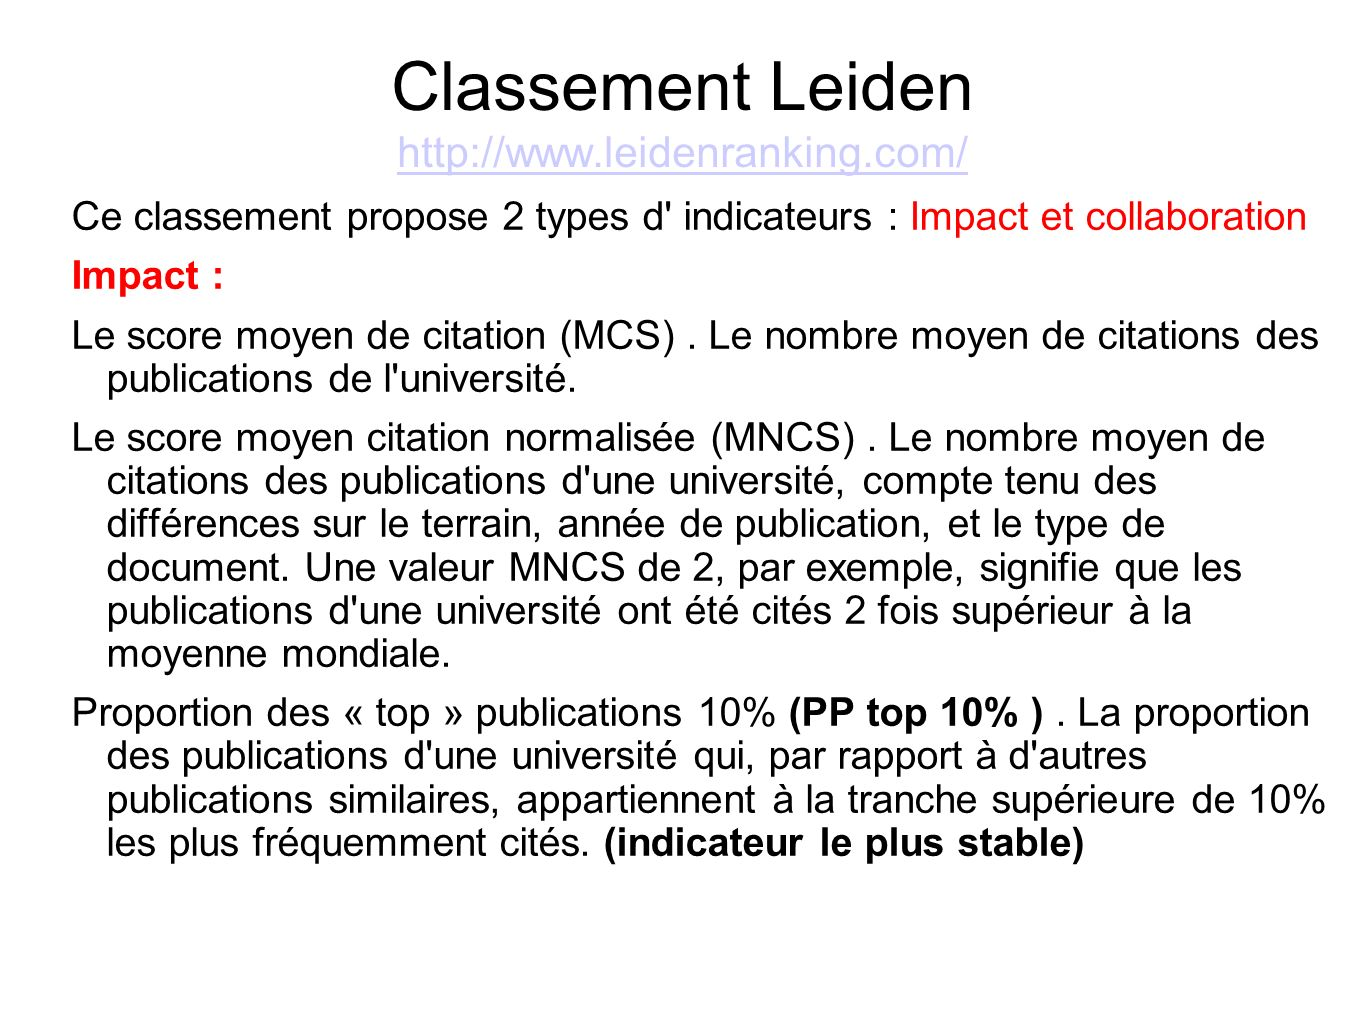 Classement Leiden (suite) http://www.leidenranking.com/ http://www.leidenranking.com/ Collaboration Proportion des publications de collaboration (PP collab ).